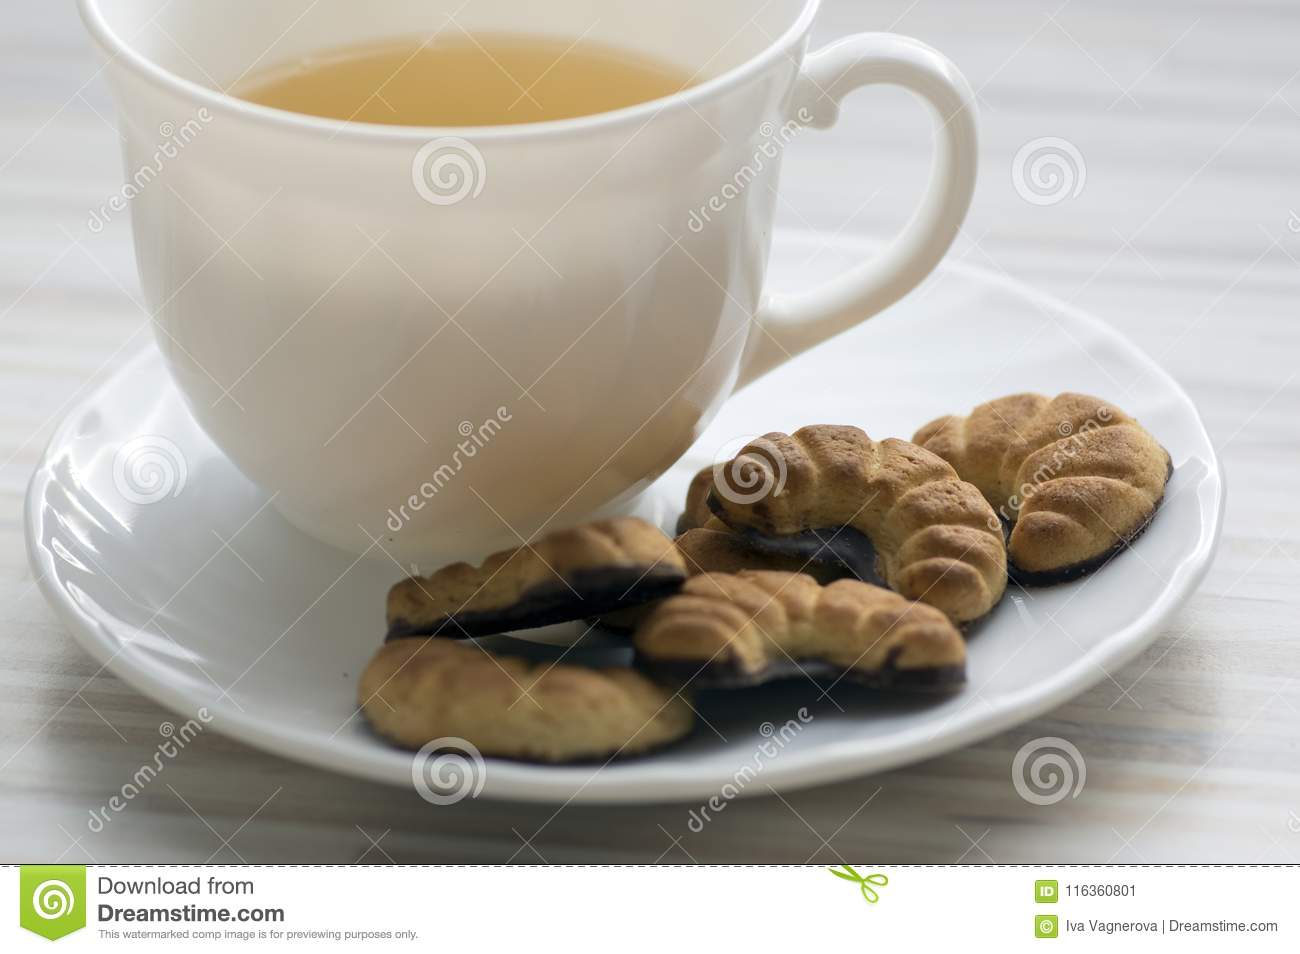 Biscuits Rolls On White Plate Tasty Chocolate Sweets For